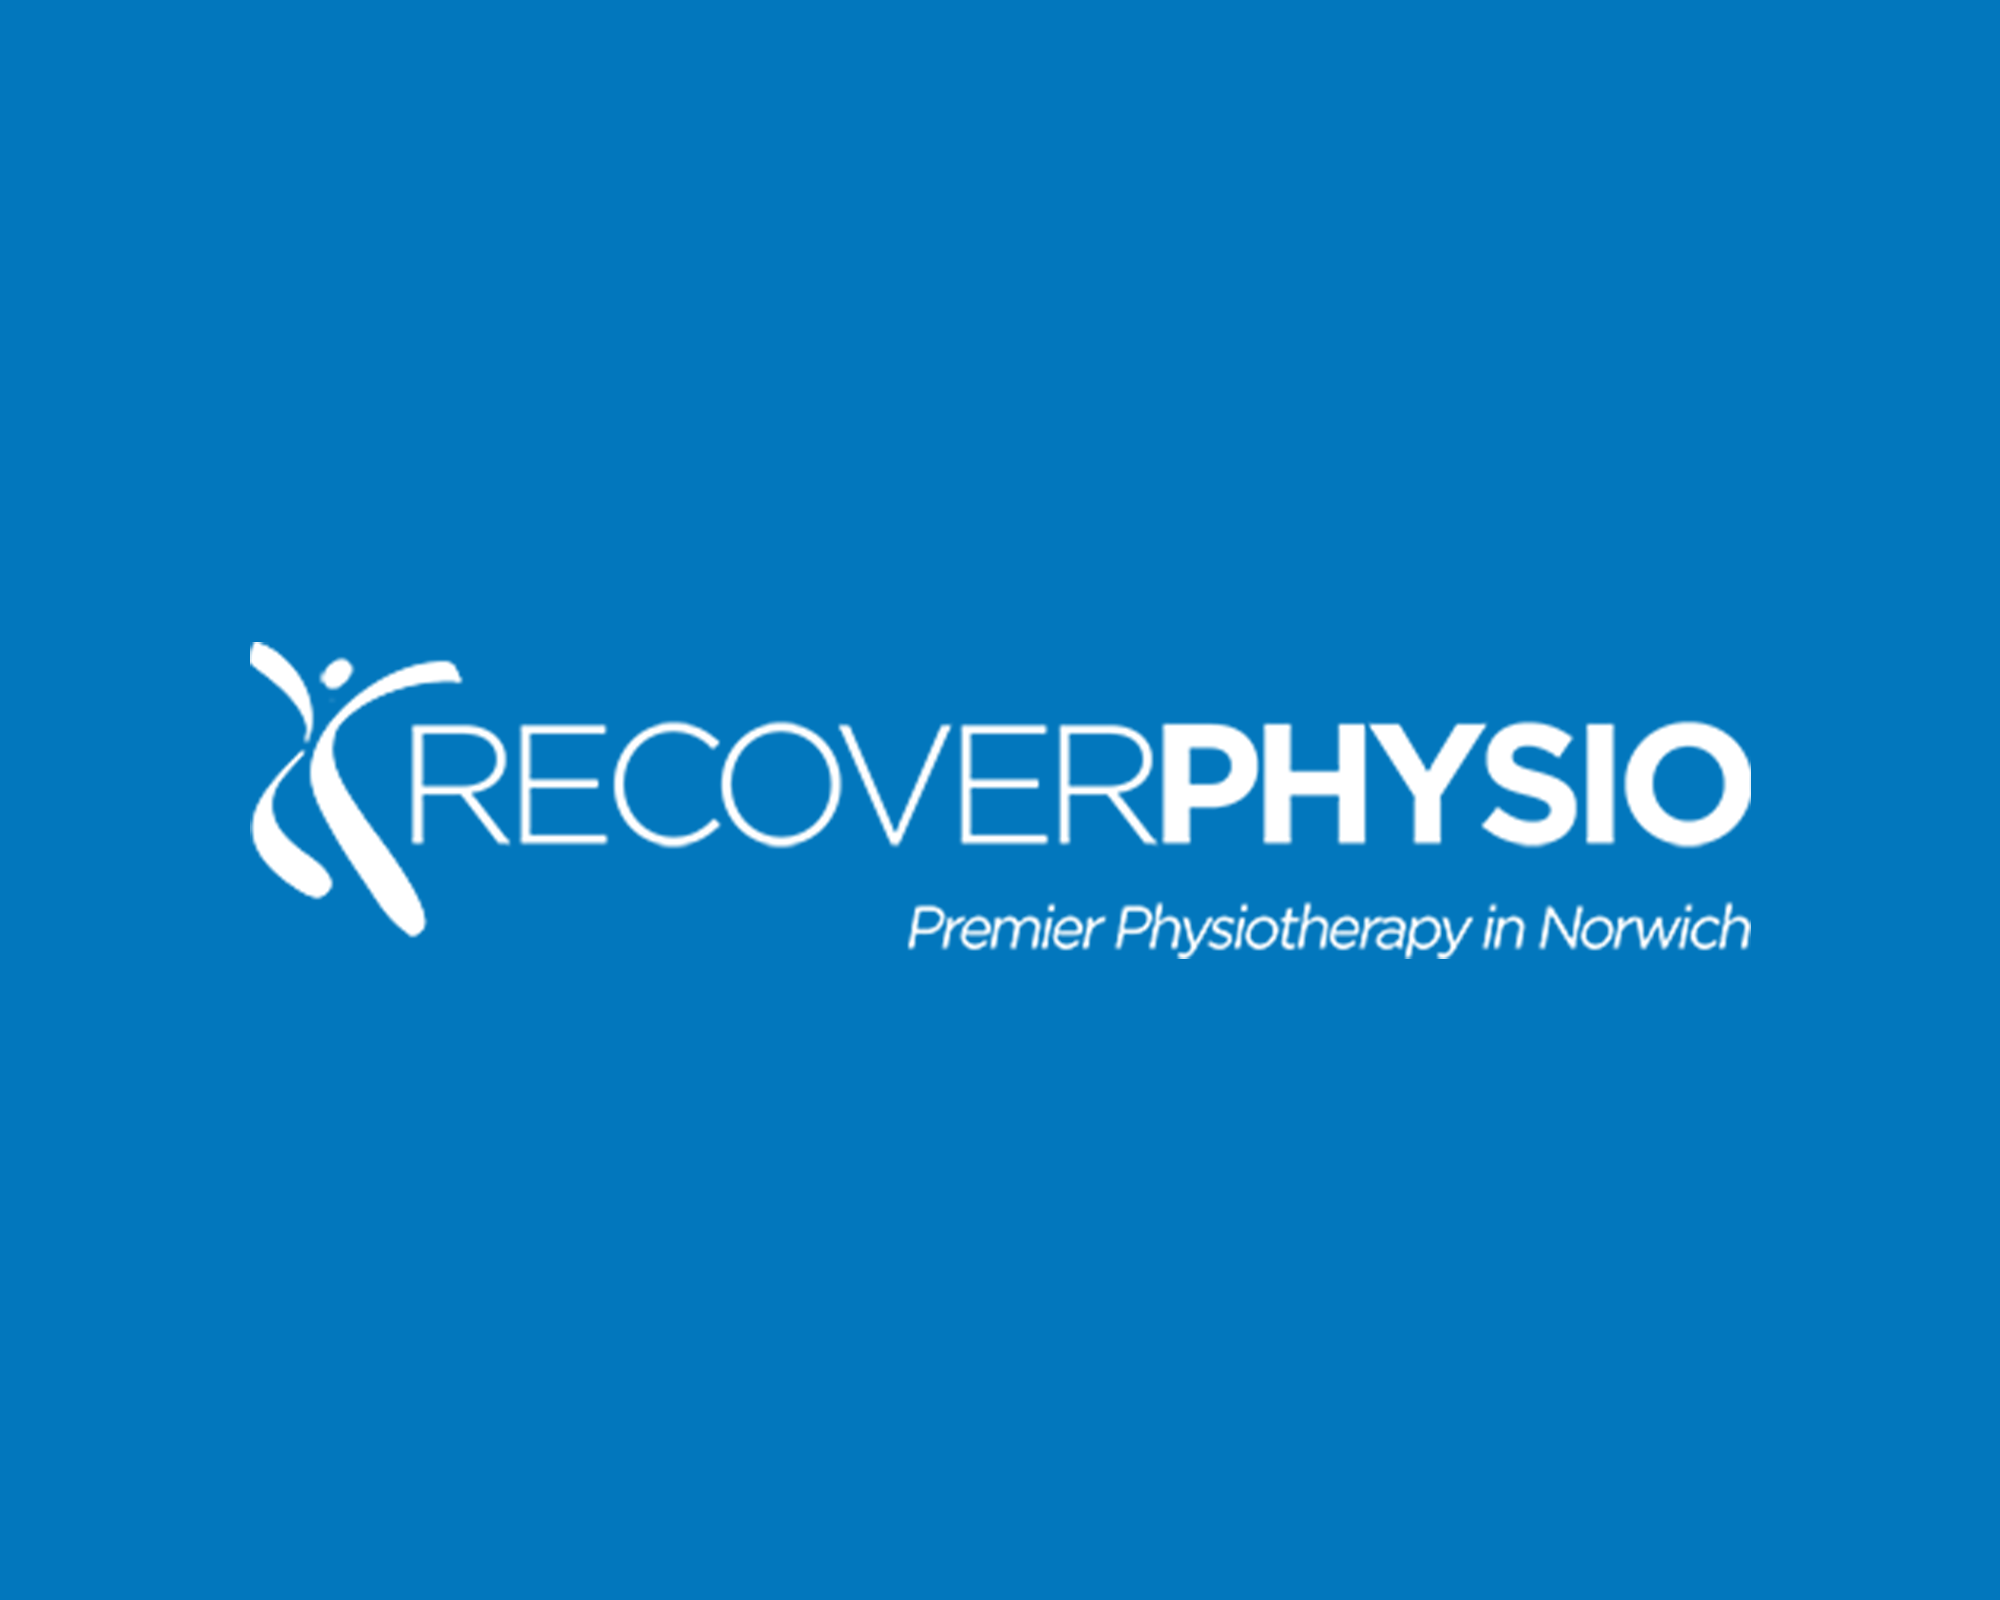 recover physio Logo